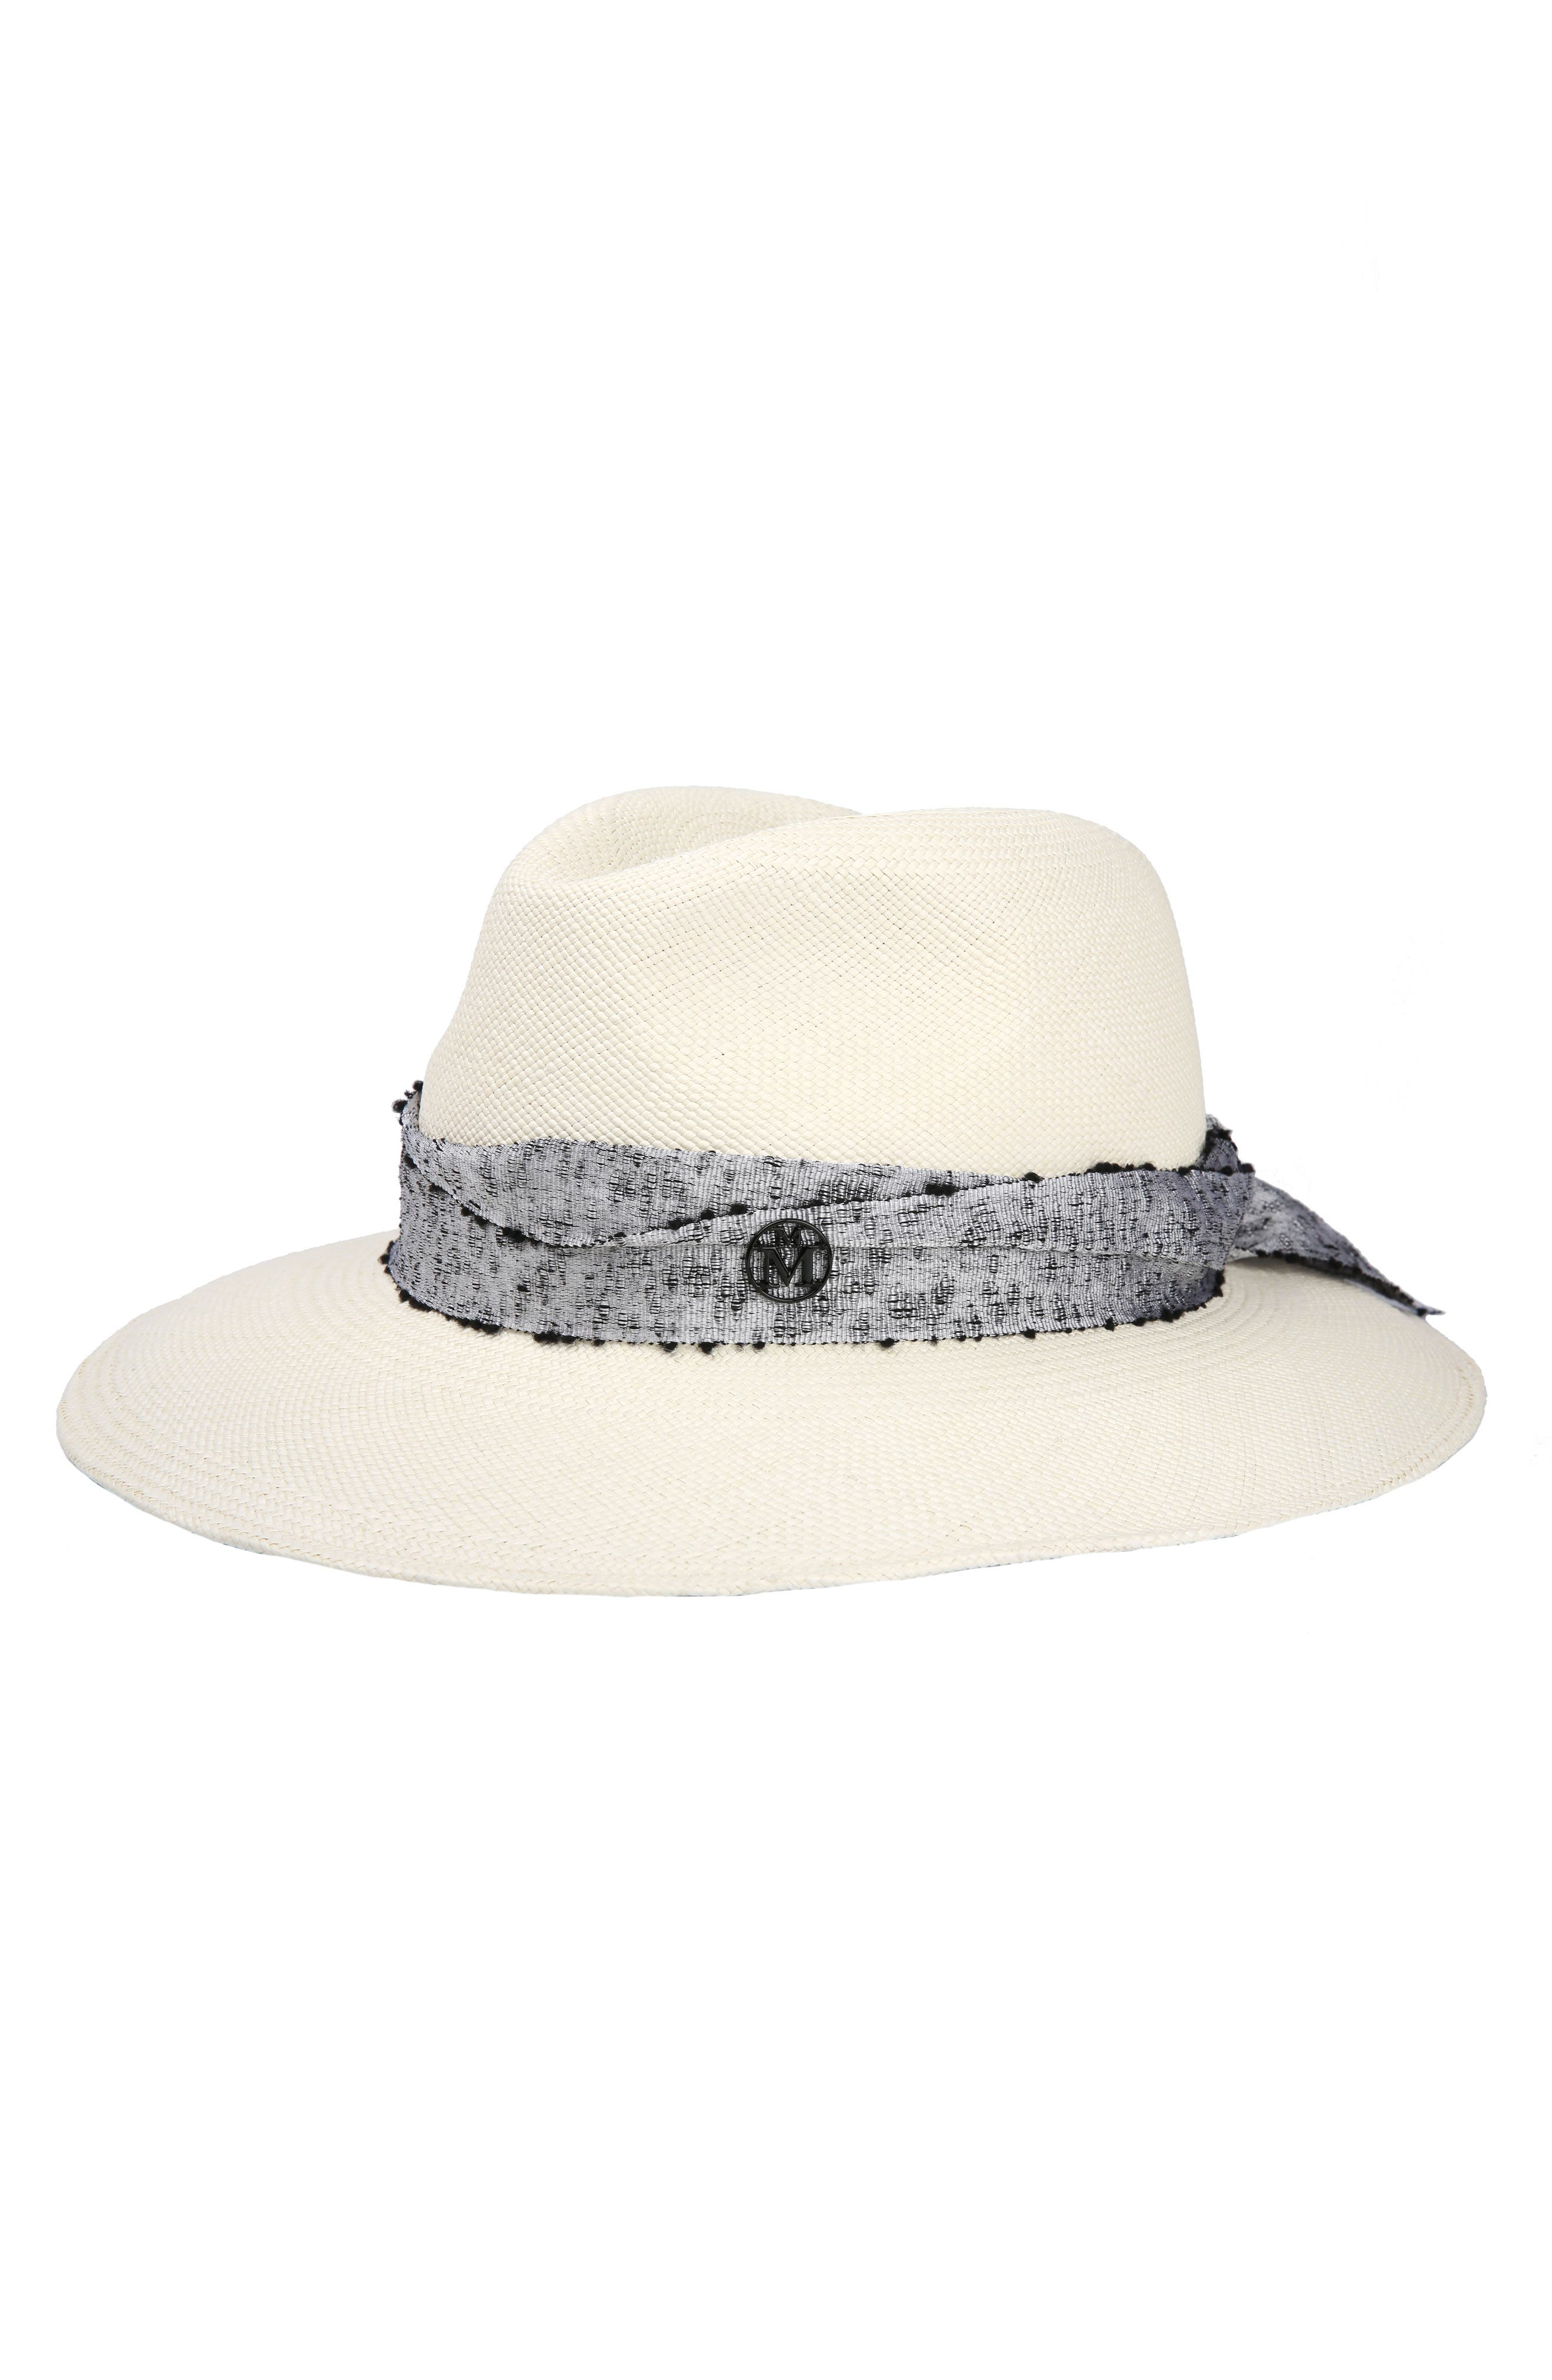 Henrietta Mottled Ribbon Hemp Hat,                         Main,                         color, Off White/ Silver